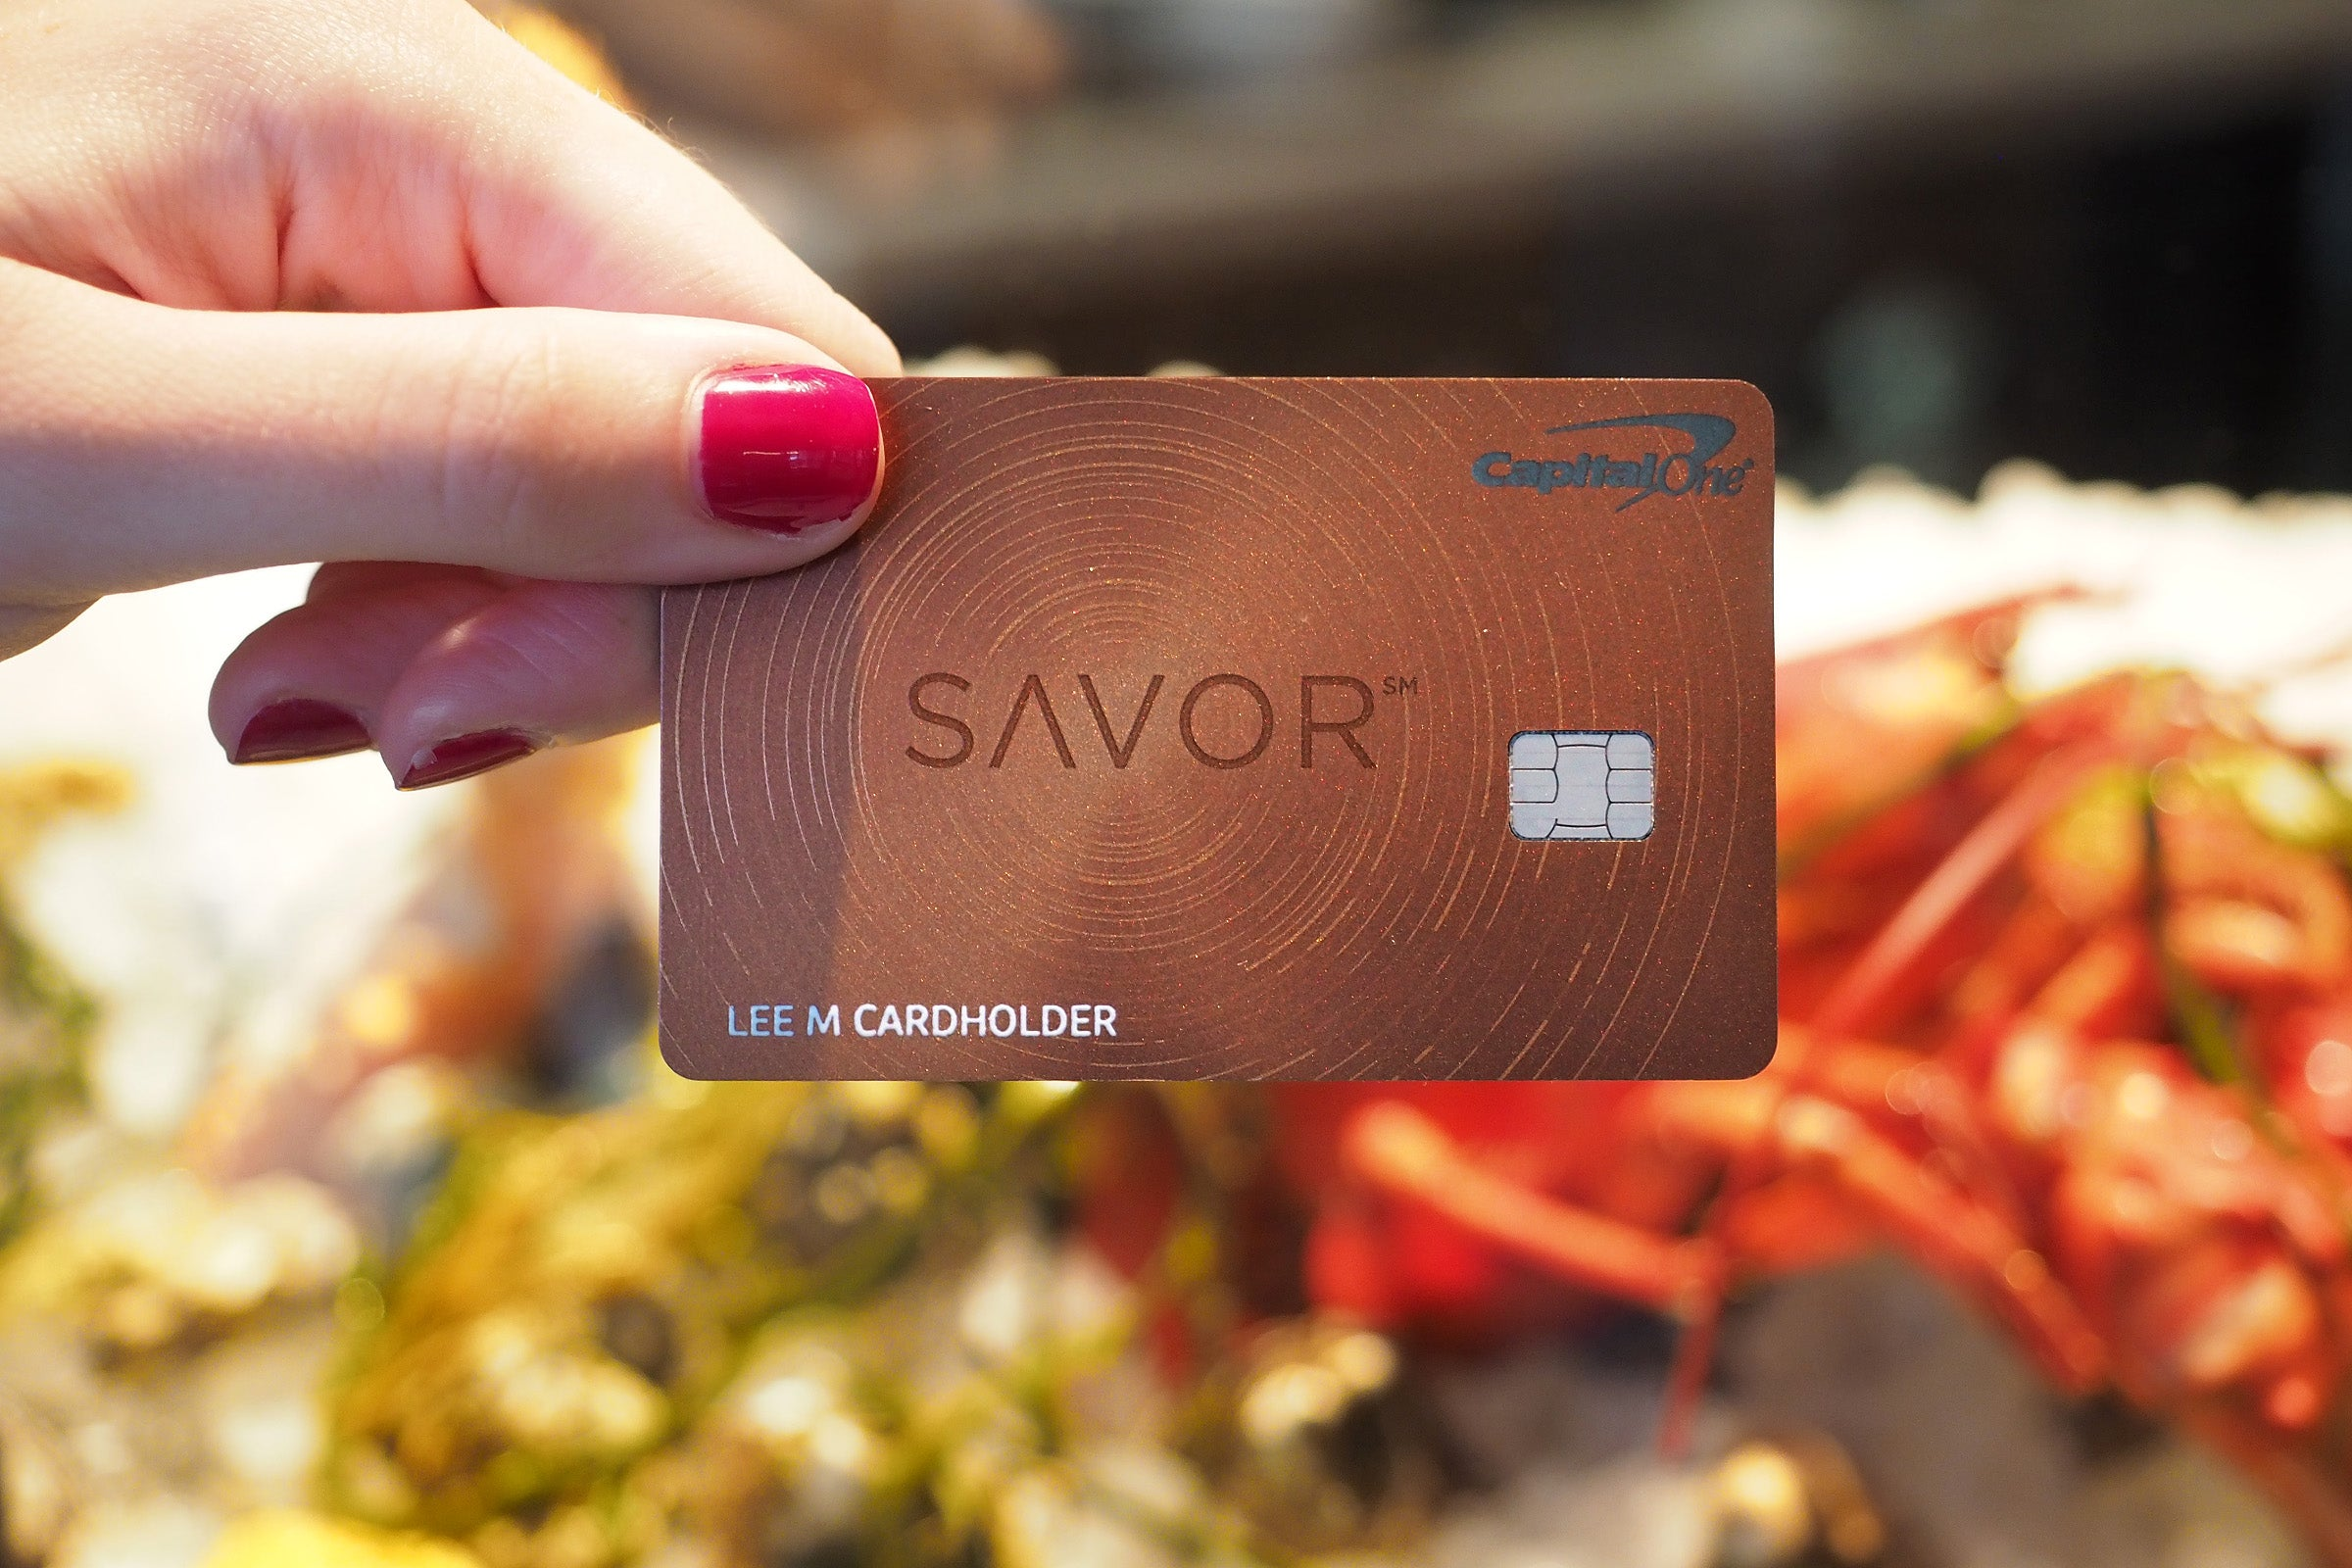 capital one launches savor card with 3 cash back on dining